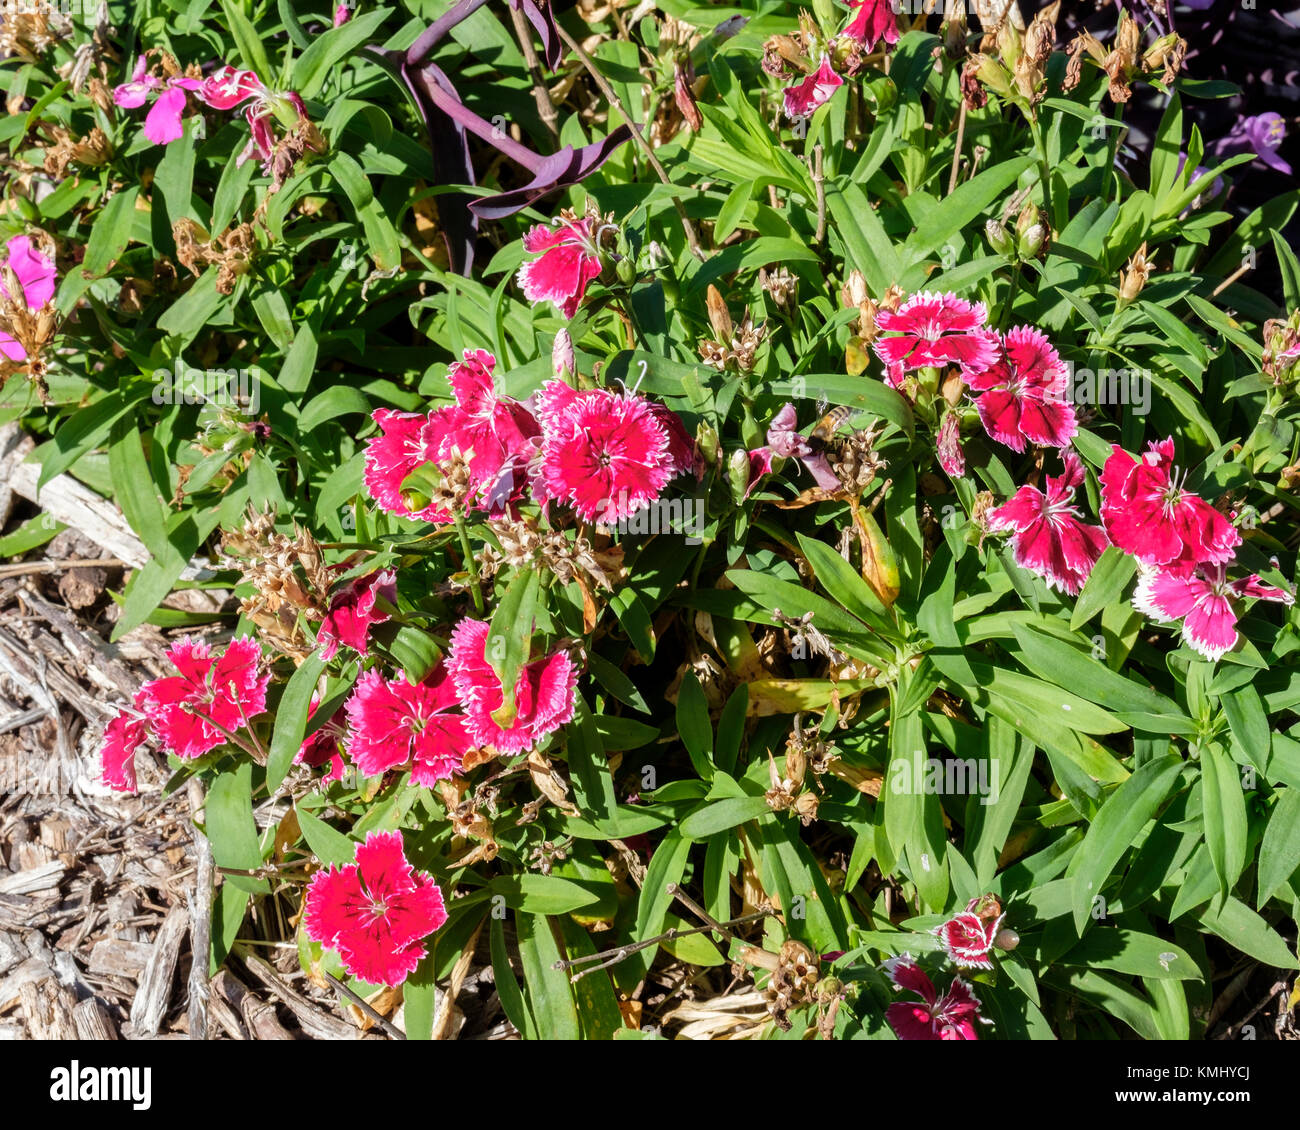 Red Dianthus chinensis in a flower bed. Oklahoma City, Oklahoma, USA. - Stock Image